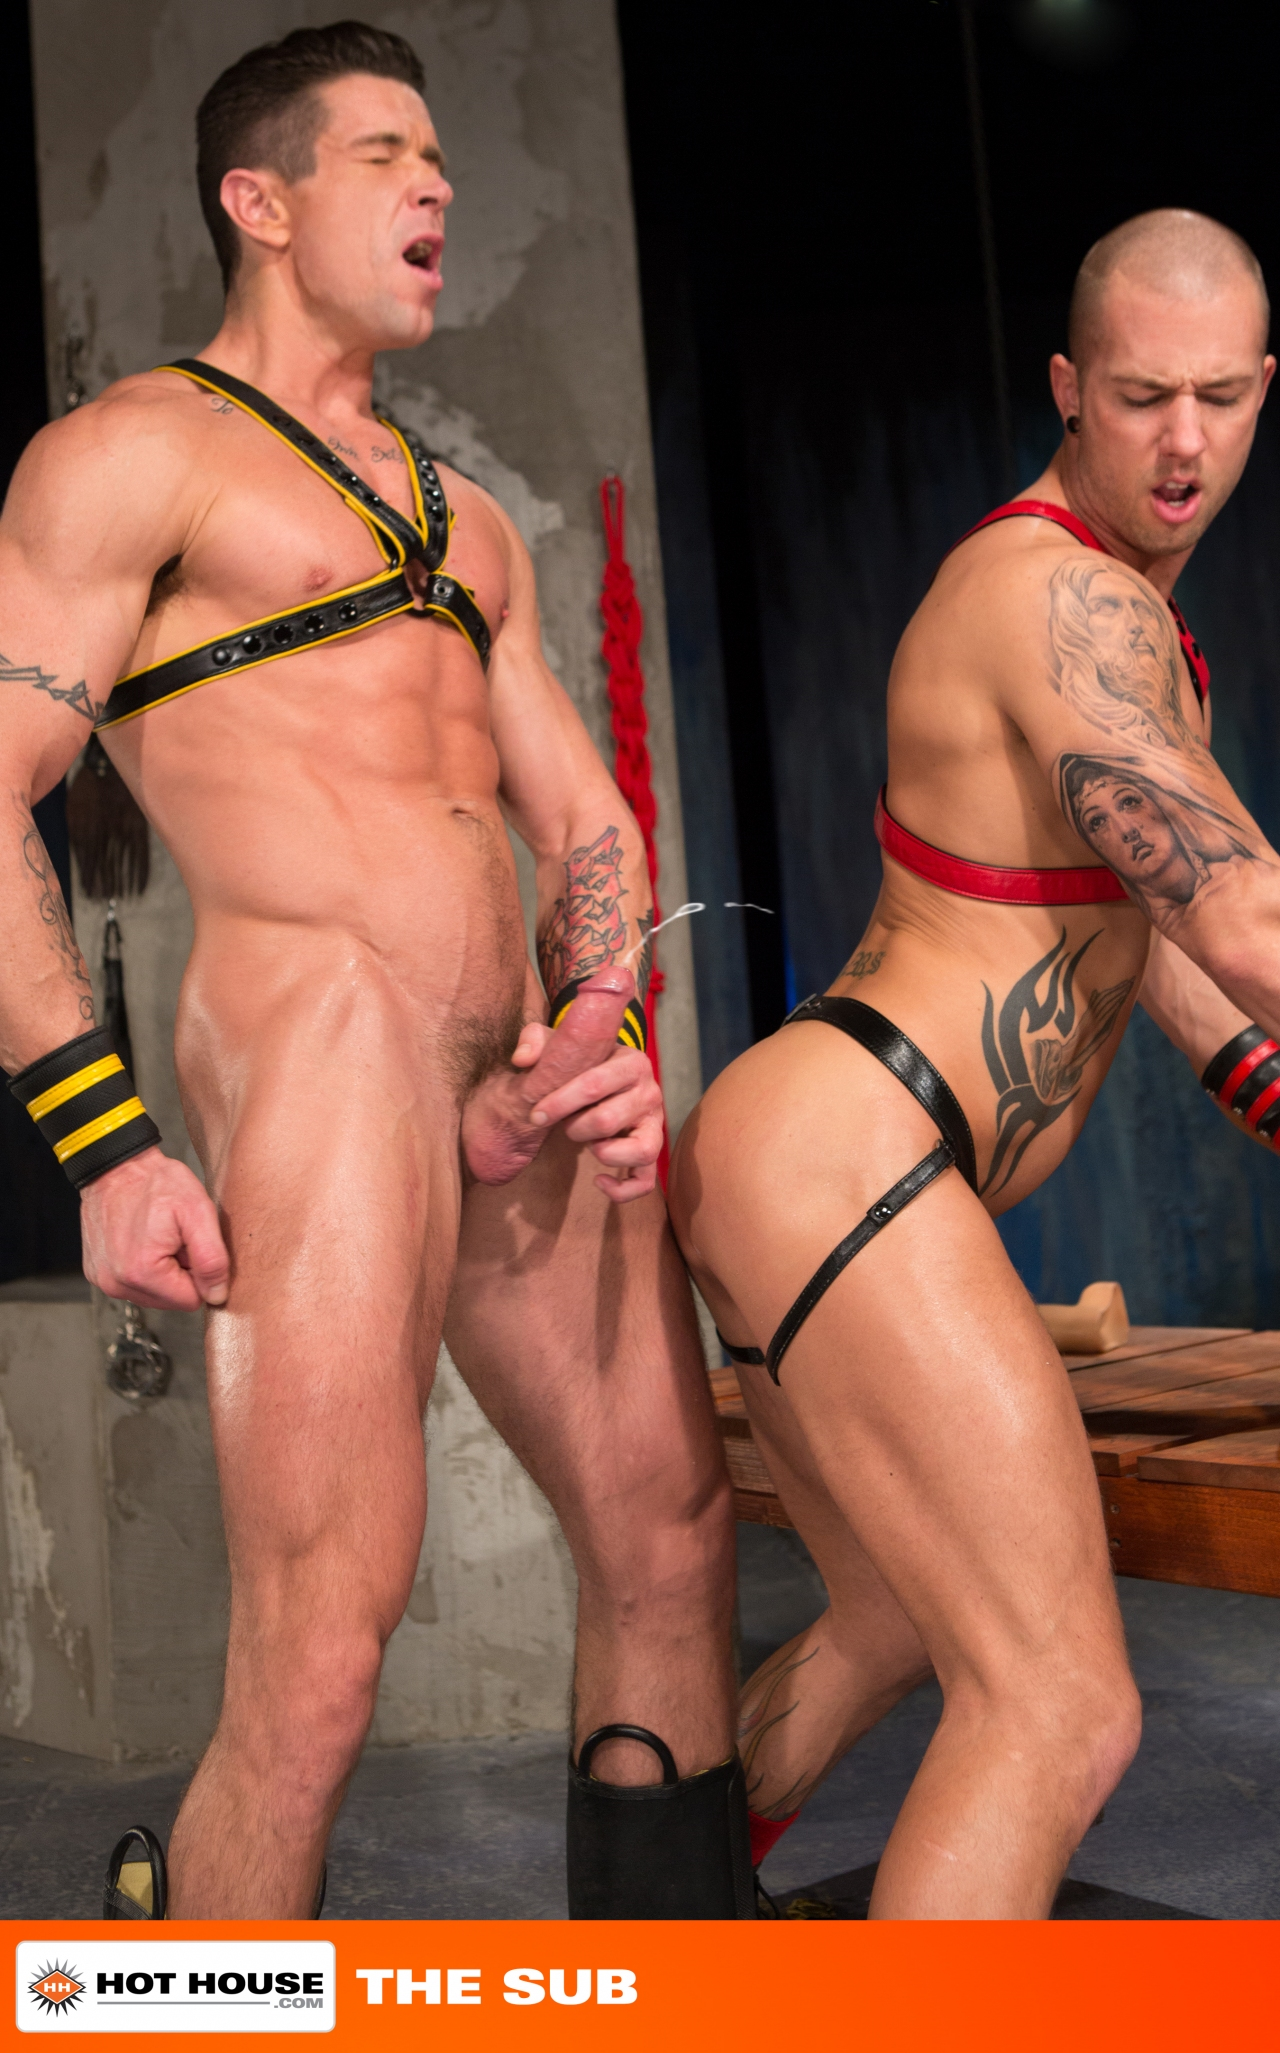 Hot House – The Sub (Scene 3)